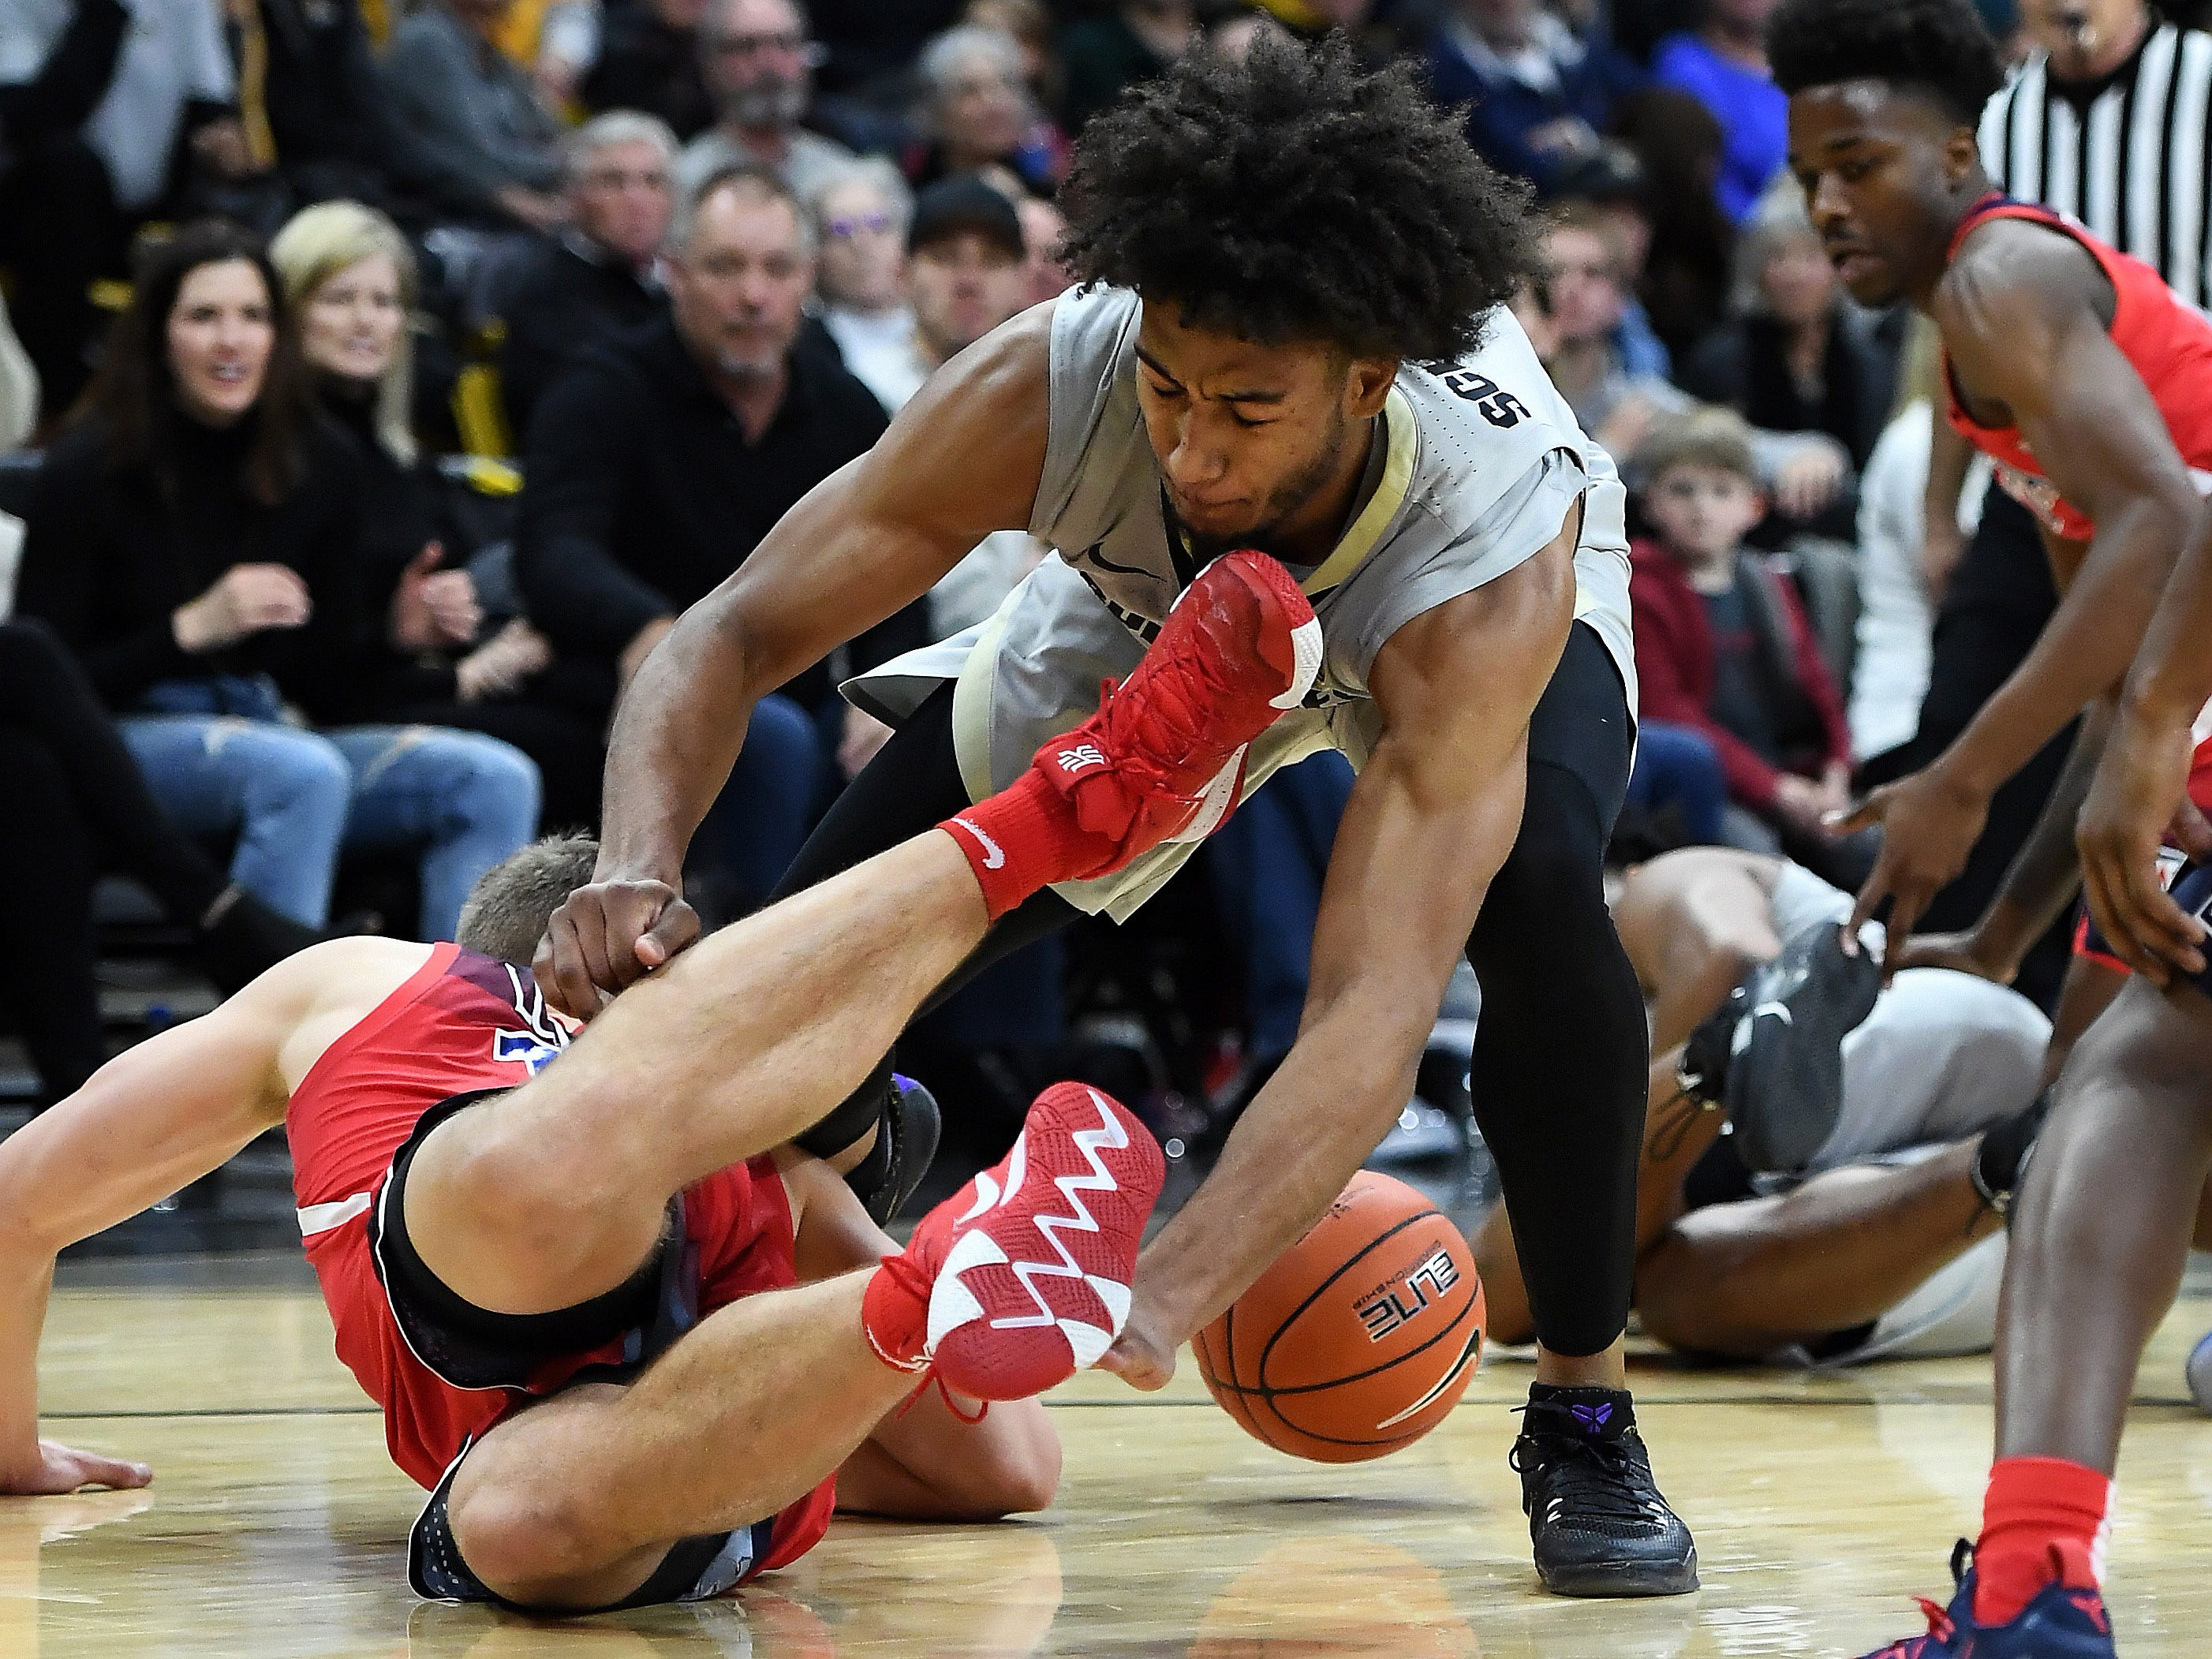 Feb 17, 2019; Boulder, CO, USA; Colorado Buffaloes guard D'Shawn Schwartz (5) dives for a loose ball and collides with Arizona Wildcats forward Ryan Luther (10) in the first half at the Coors Events Center. Mandatory Credit: Ron Chenoy-USA TODAY Sports